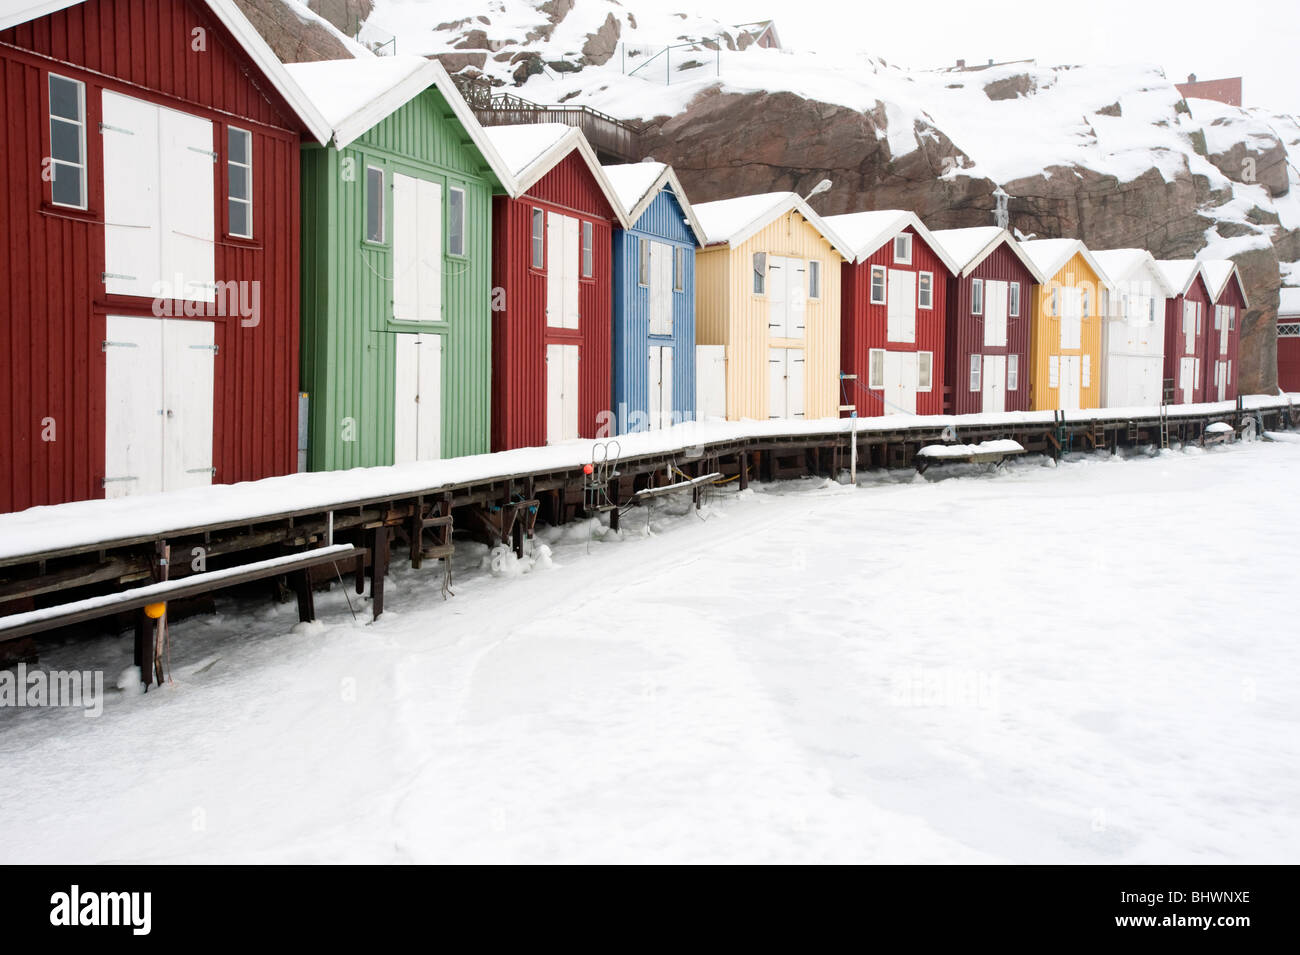 Smogen; Colourful wooden cabins in Traditional fishing village Smogen during winter after snow on Bohuslan coast - Stock Image